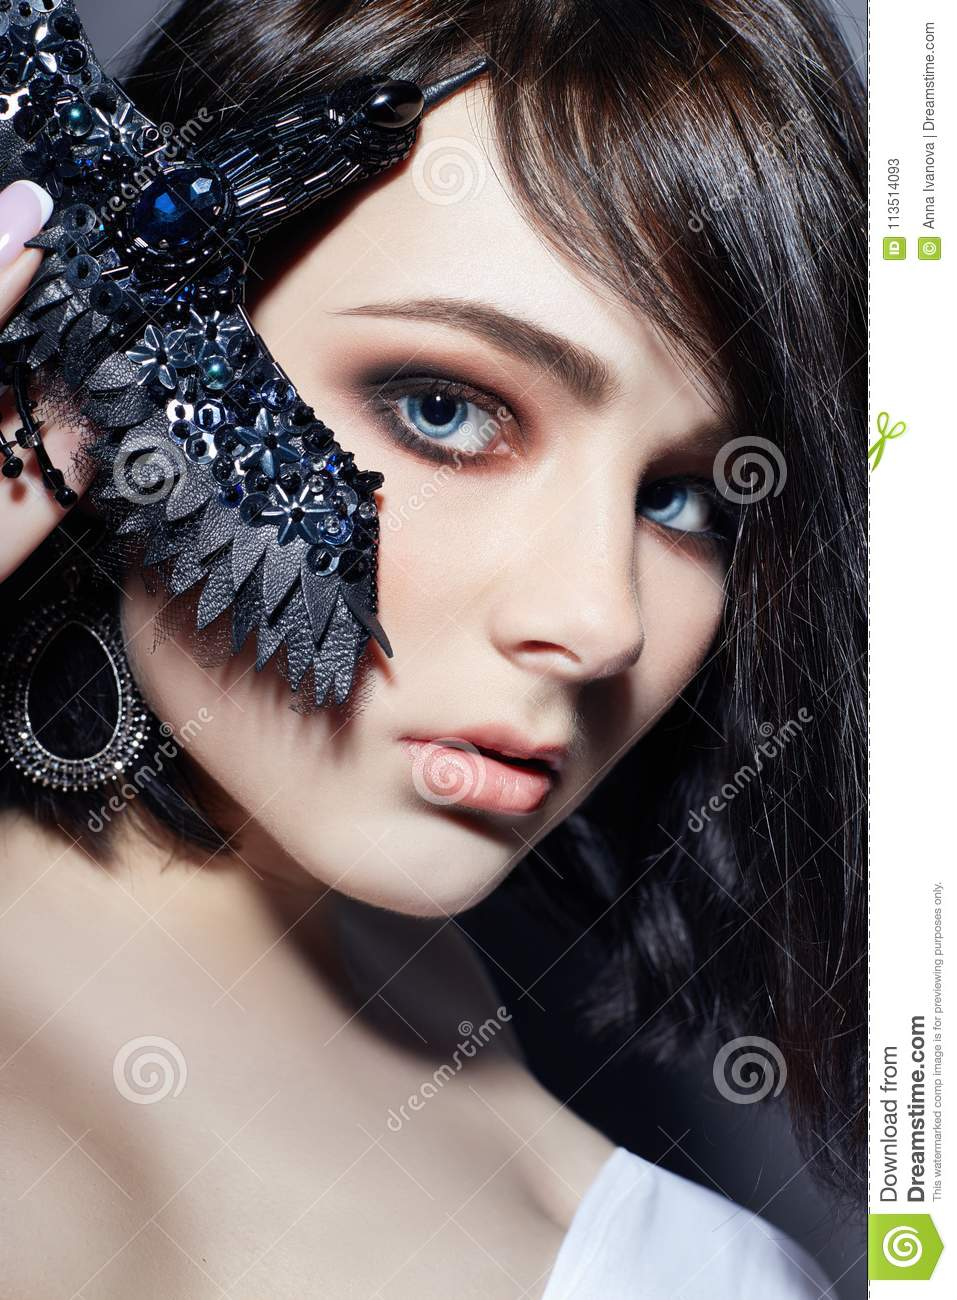 Beautiful Brunette Girl With Big Blue Eyes Holding A Black Brooch